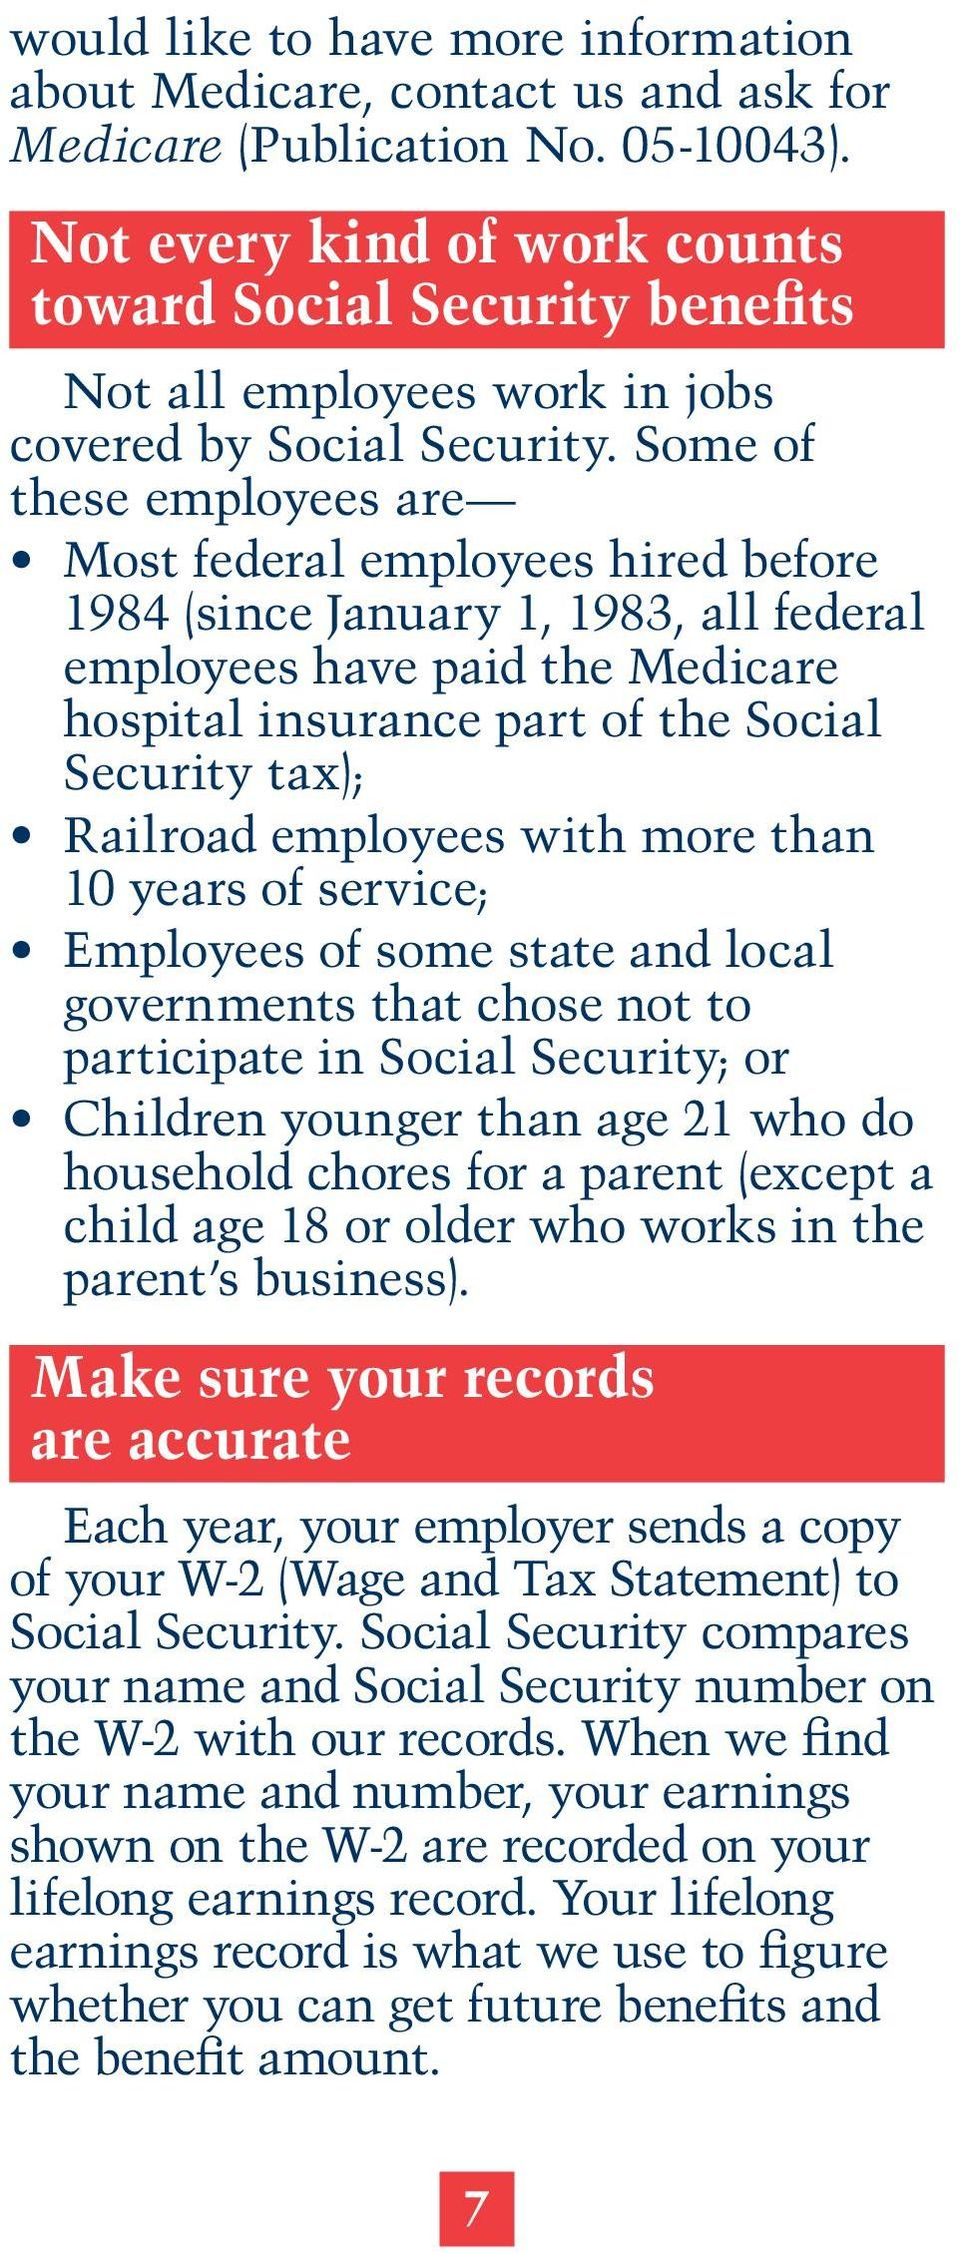 Some of these employees are Most federal employees hired before 1984 (since January 1, 1983, all federal employees have paid the Medicare hospital insurance part of the Social Security tax); Railroad